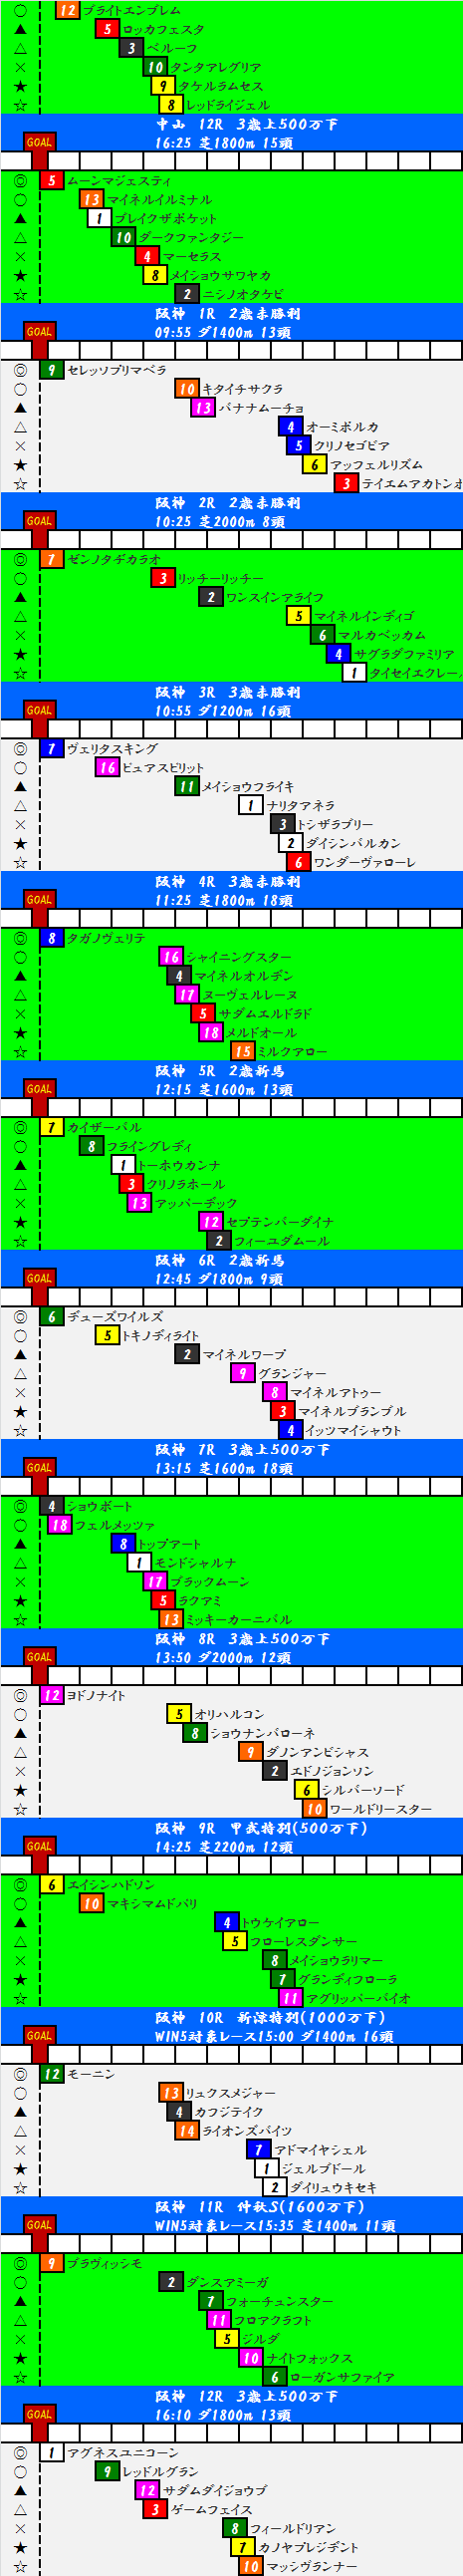 2015092102.png